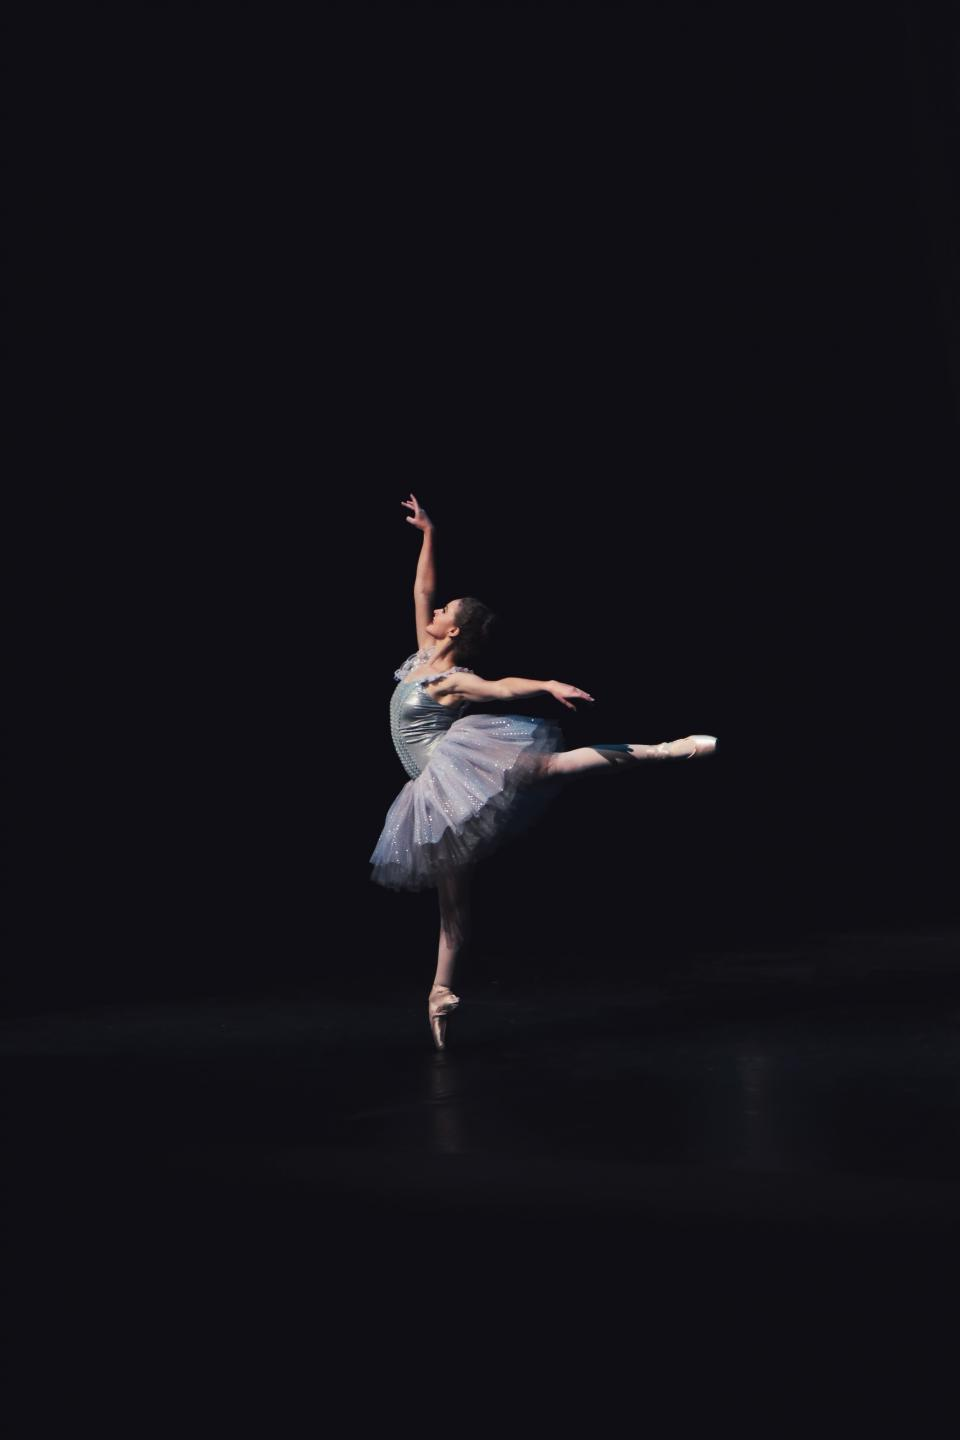 ballet dance people girl ballerina talent dancing dark stage perform